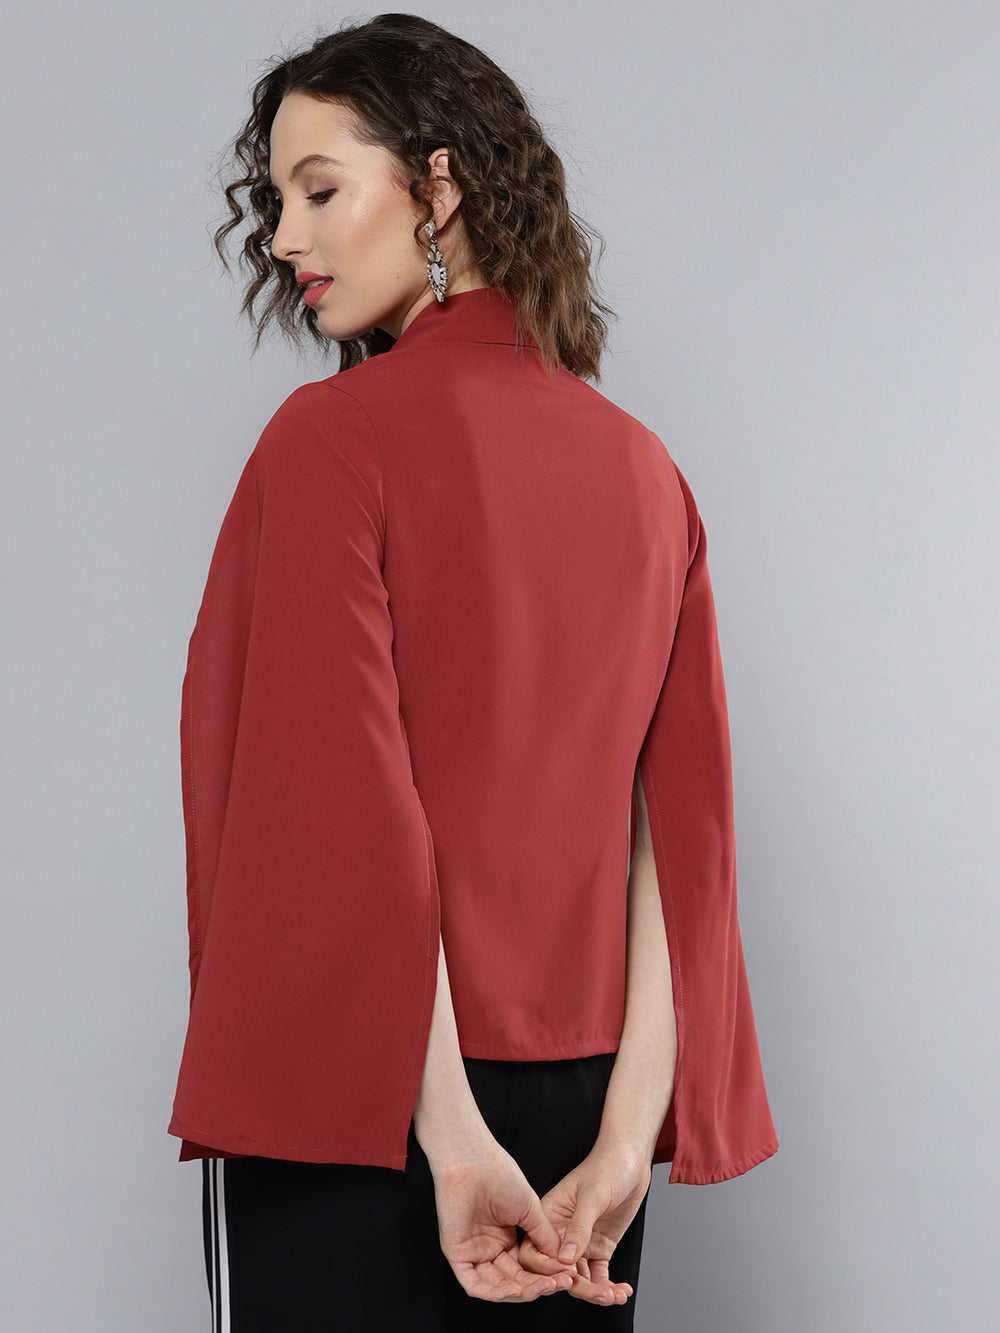 Besiva Rust Orange Solid Shrug